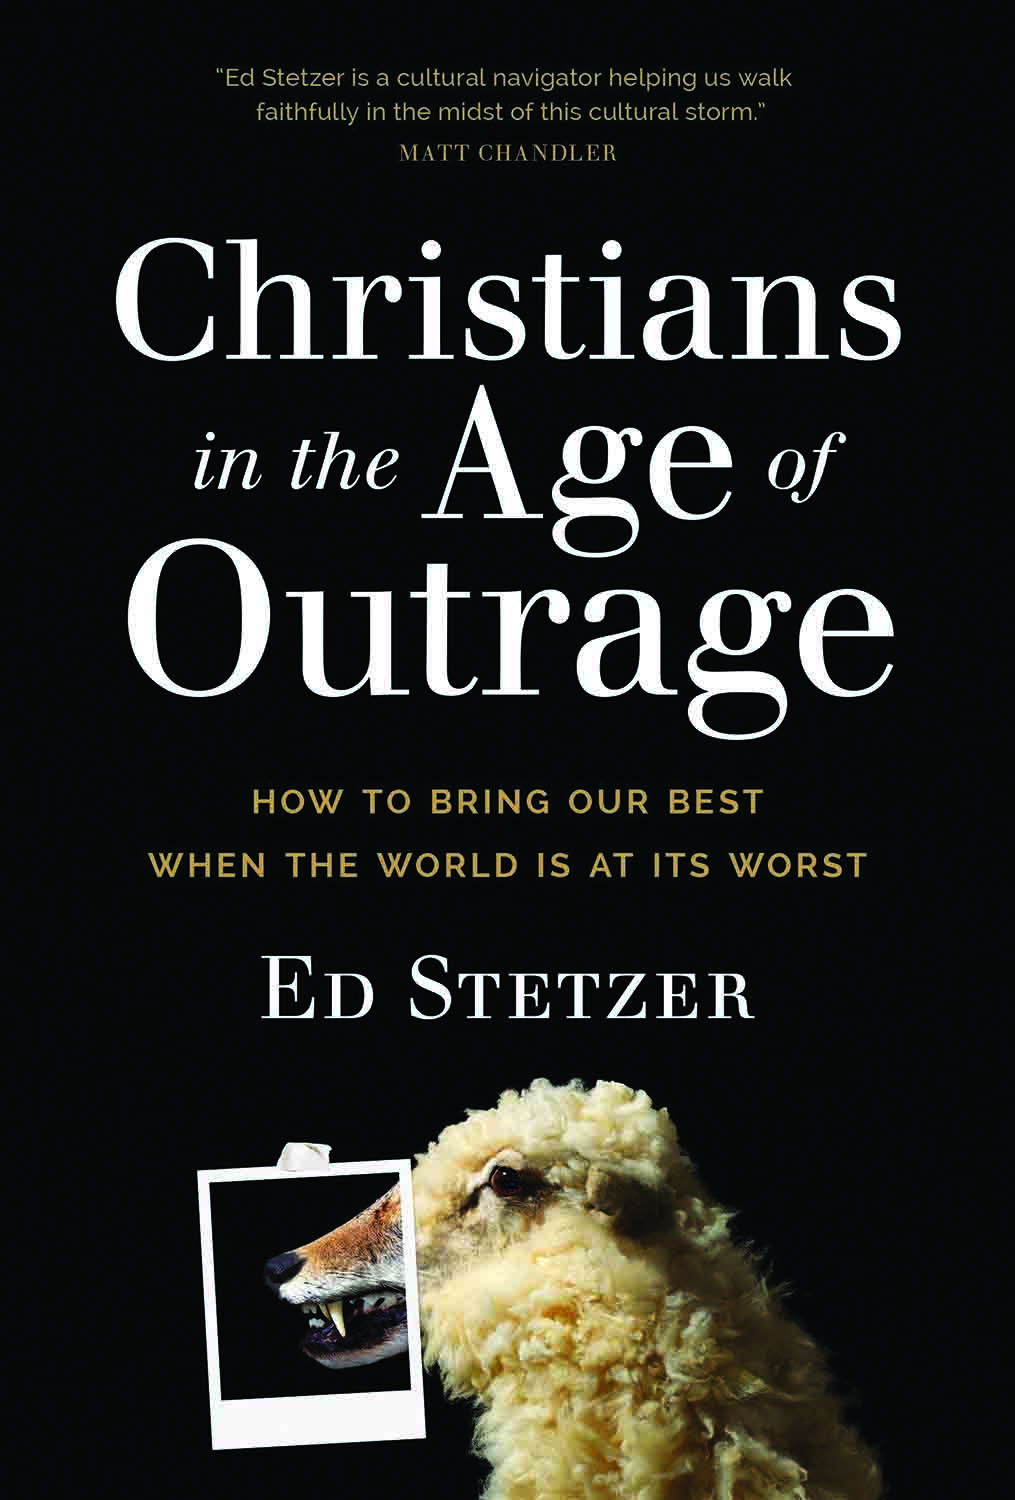 Ed Stetzer. Christians in the Age of Outrage: How to Bring Our Best When the World Is at Its Worst. Carol Stream, Ill.: Tyndale Momentum, 2018. 336 pages.